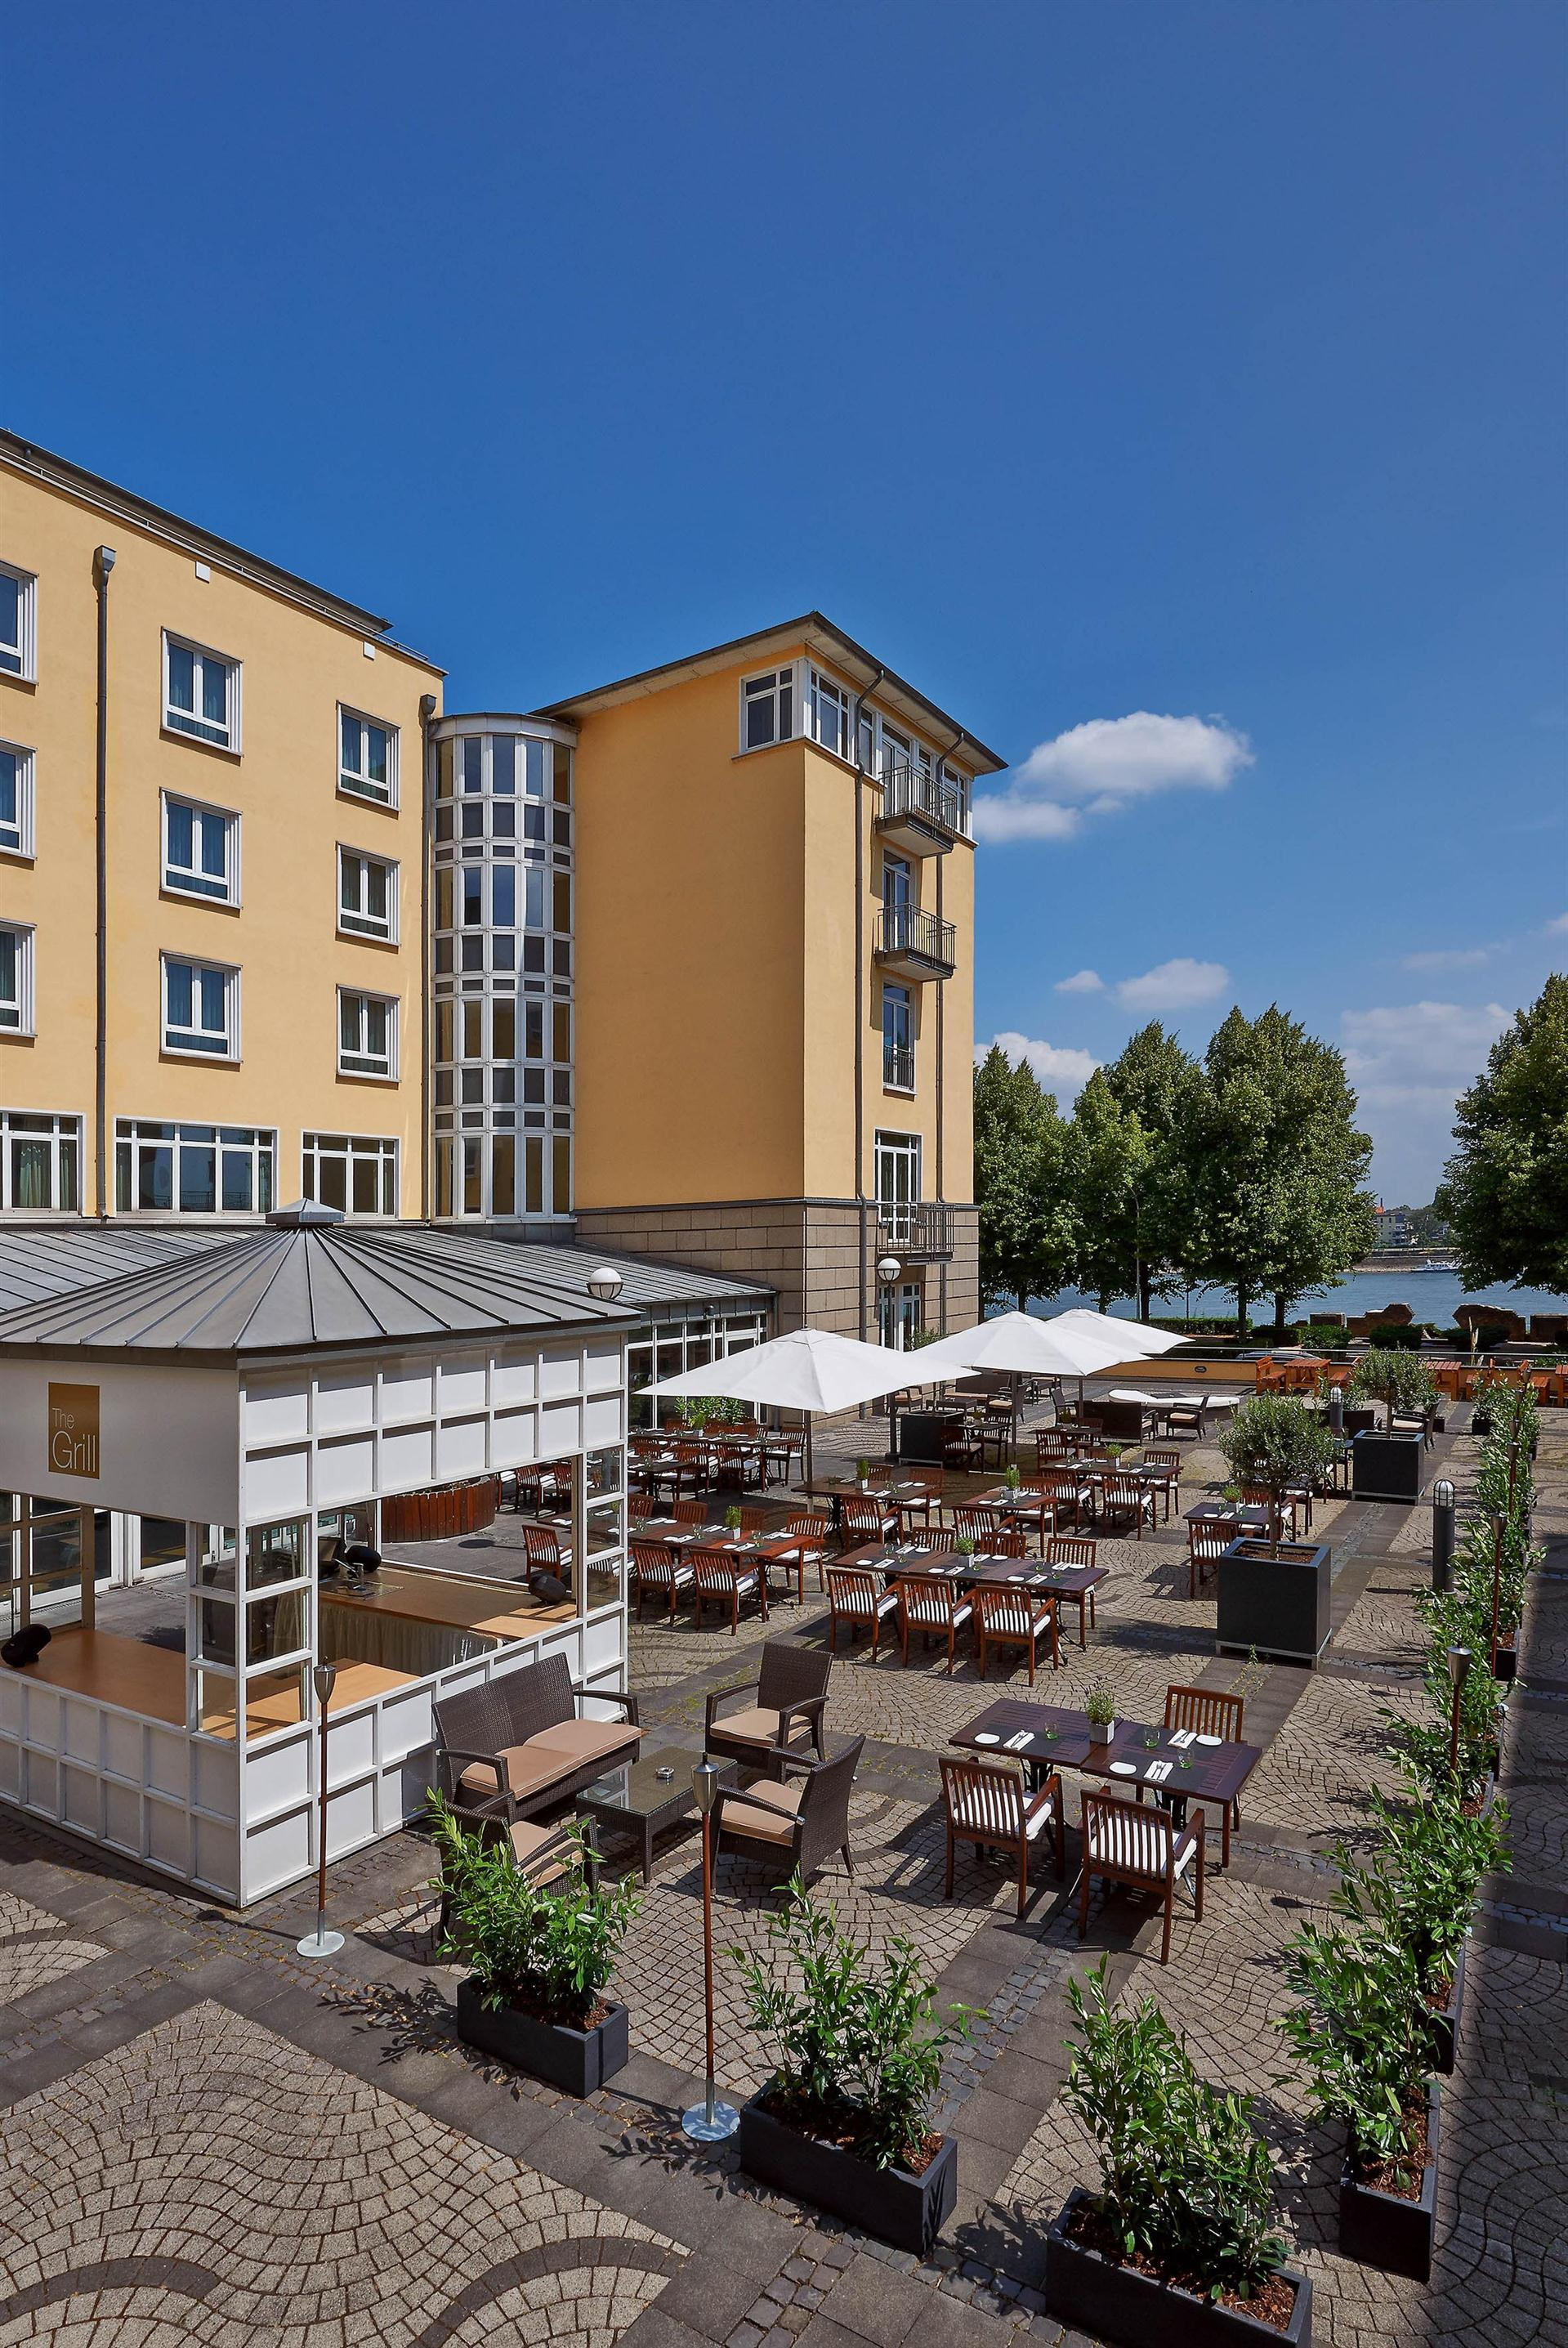 Meetings And Events At Cologne Marriott Hotel Cologne De